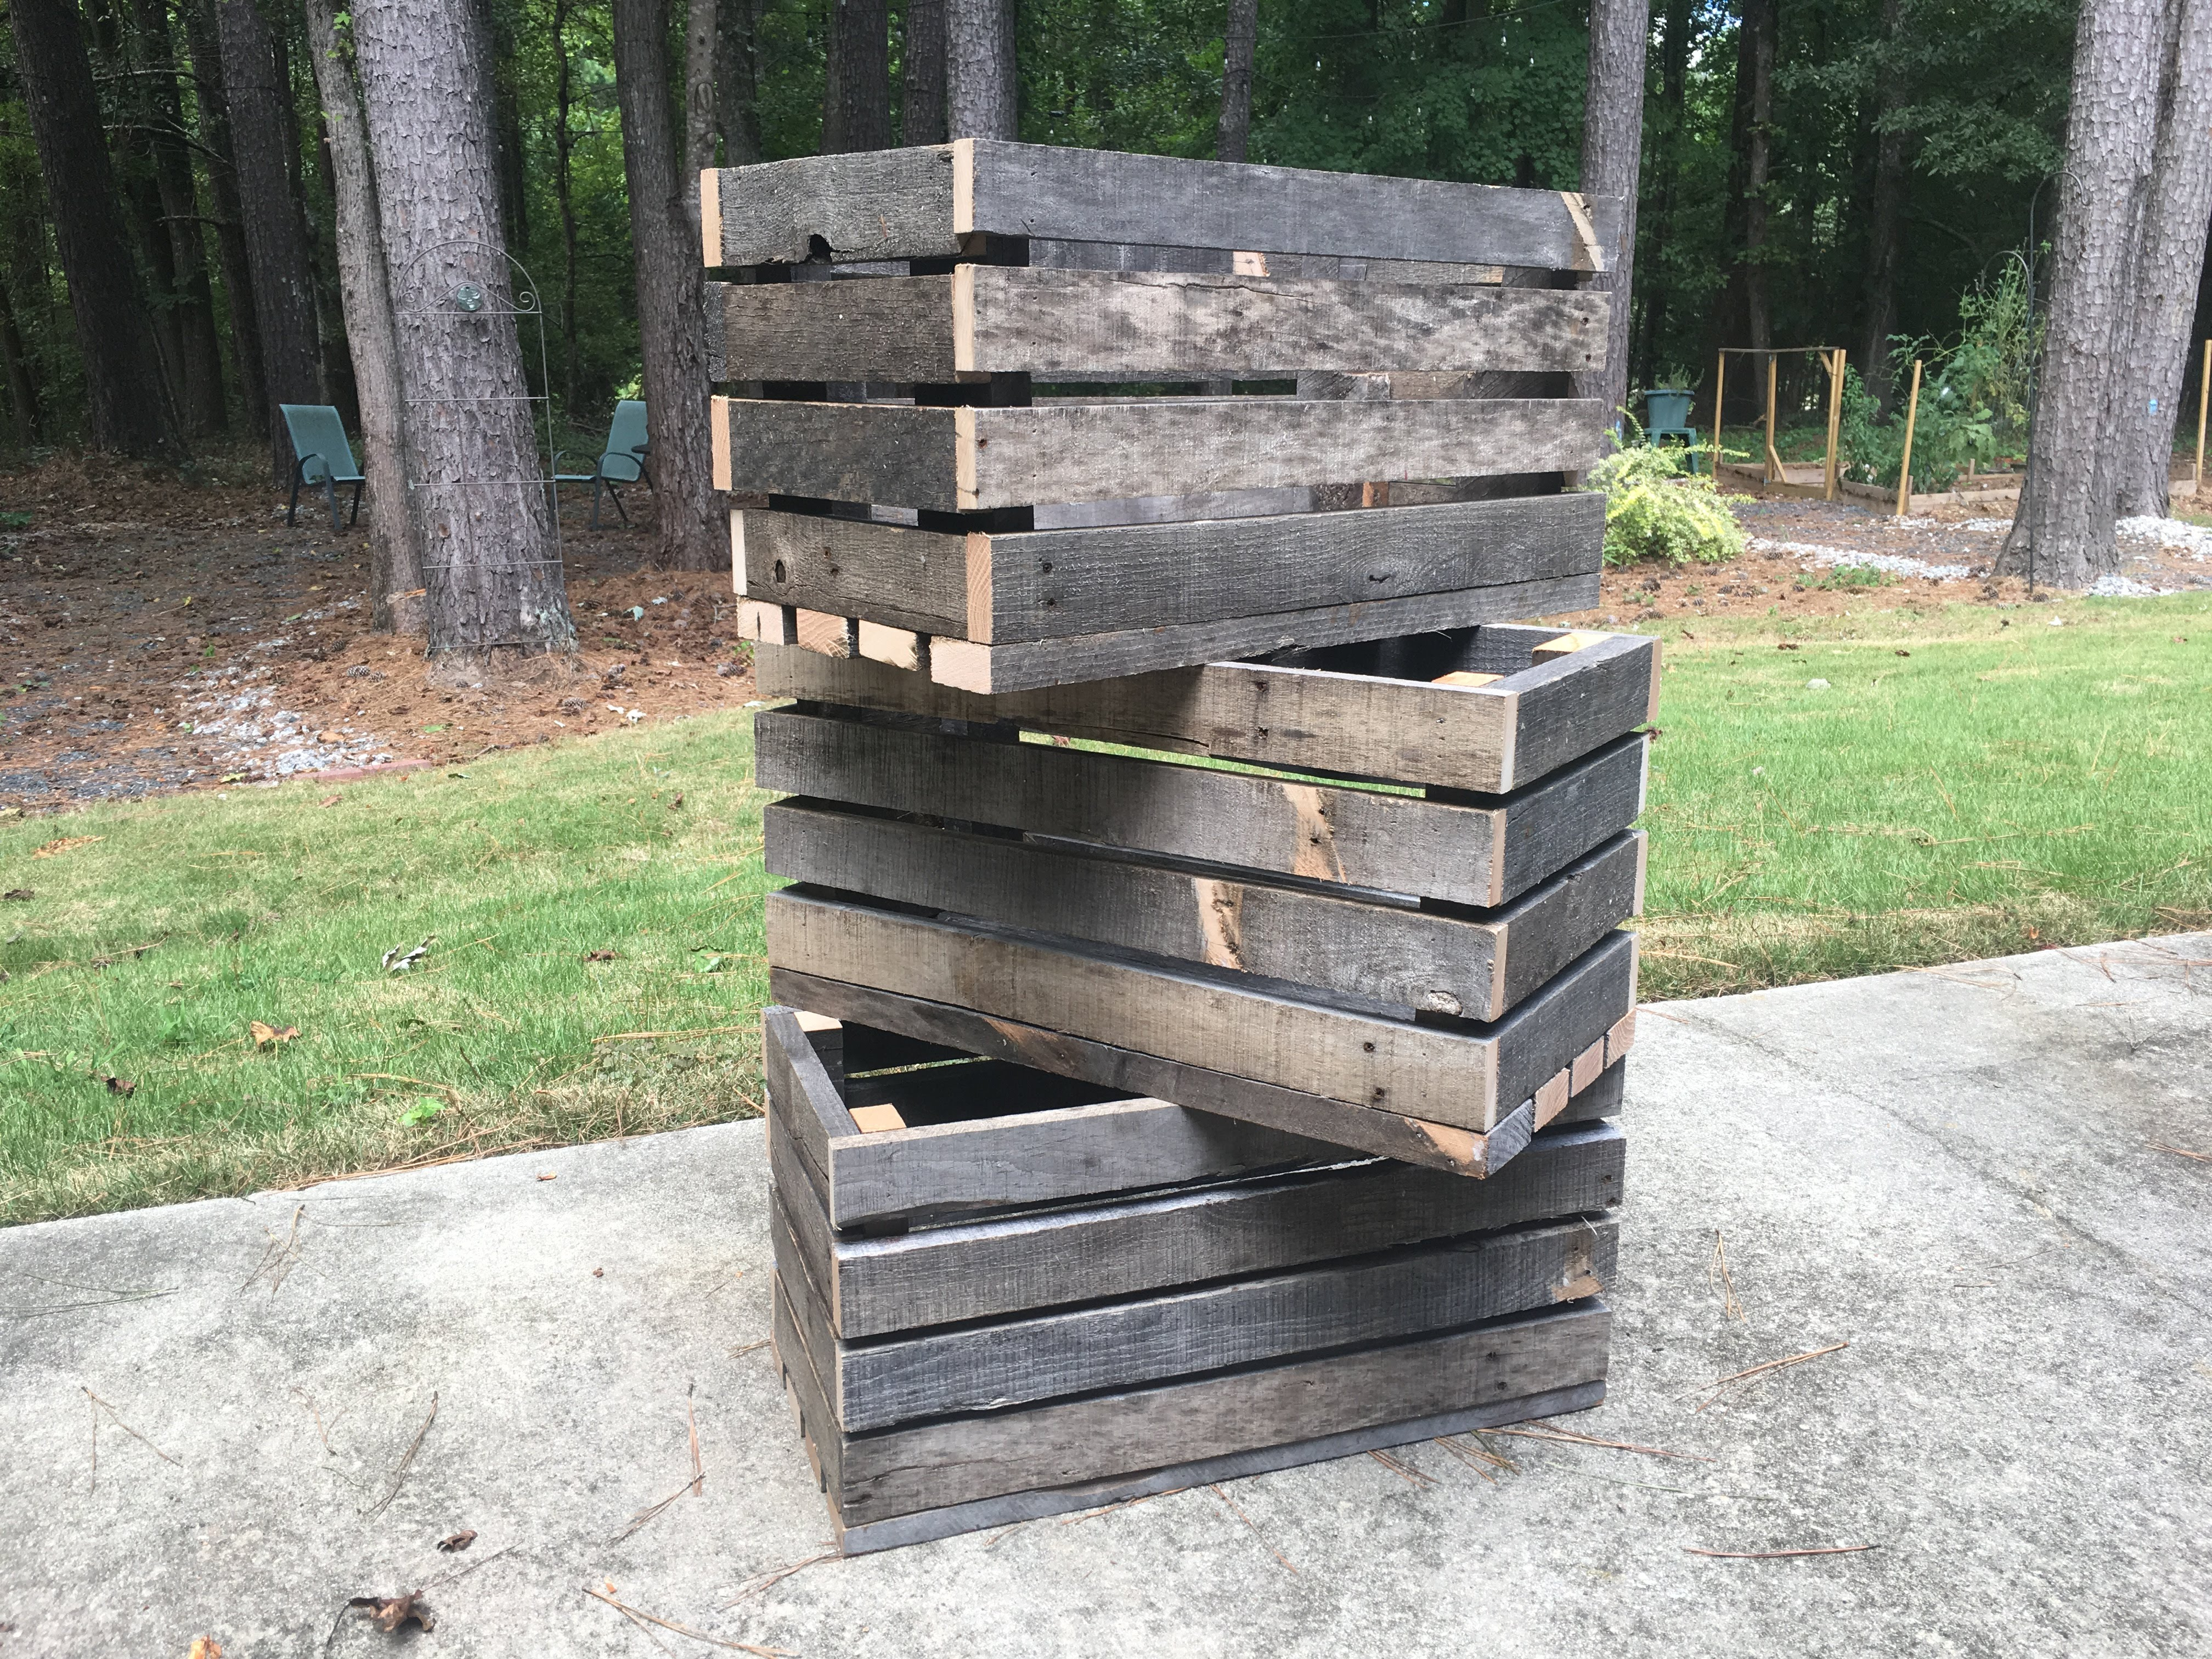 How To Make Crates Out Of Wood Pallets Building Our Rez